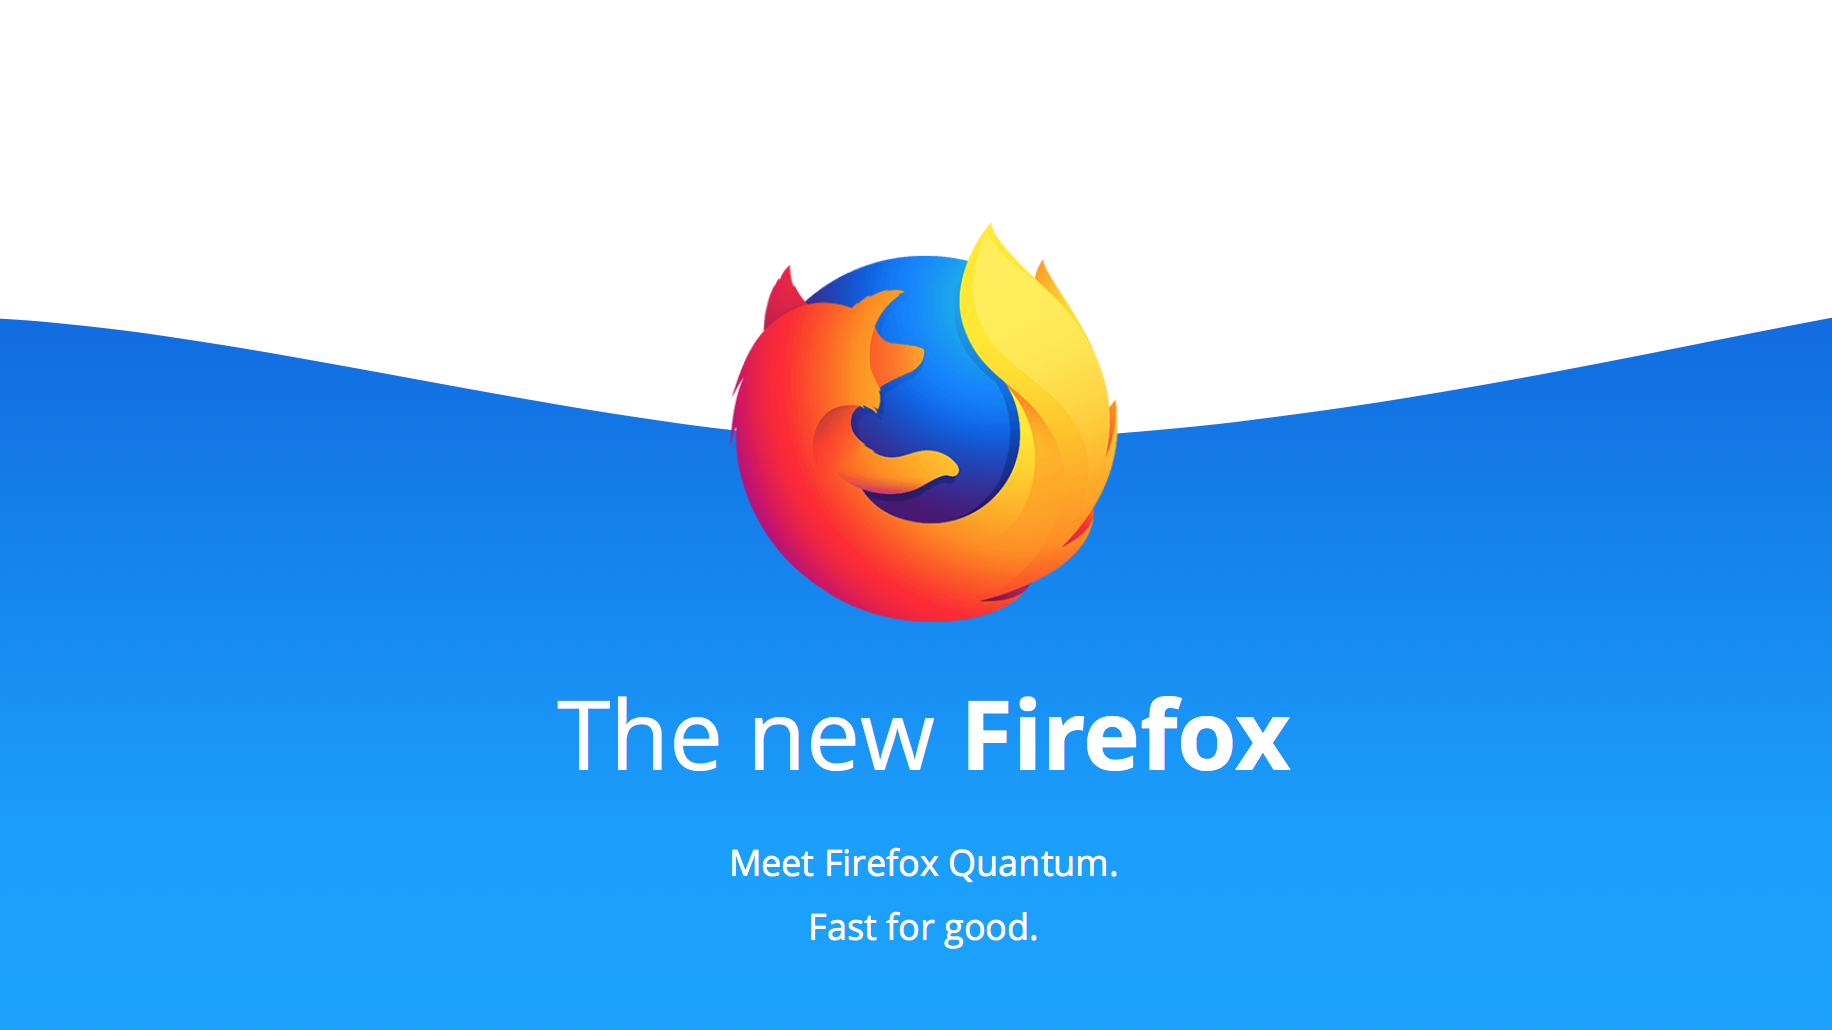 Mozilla Firefox is faster than Chrome